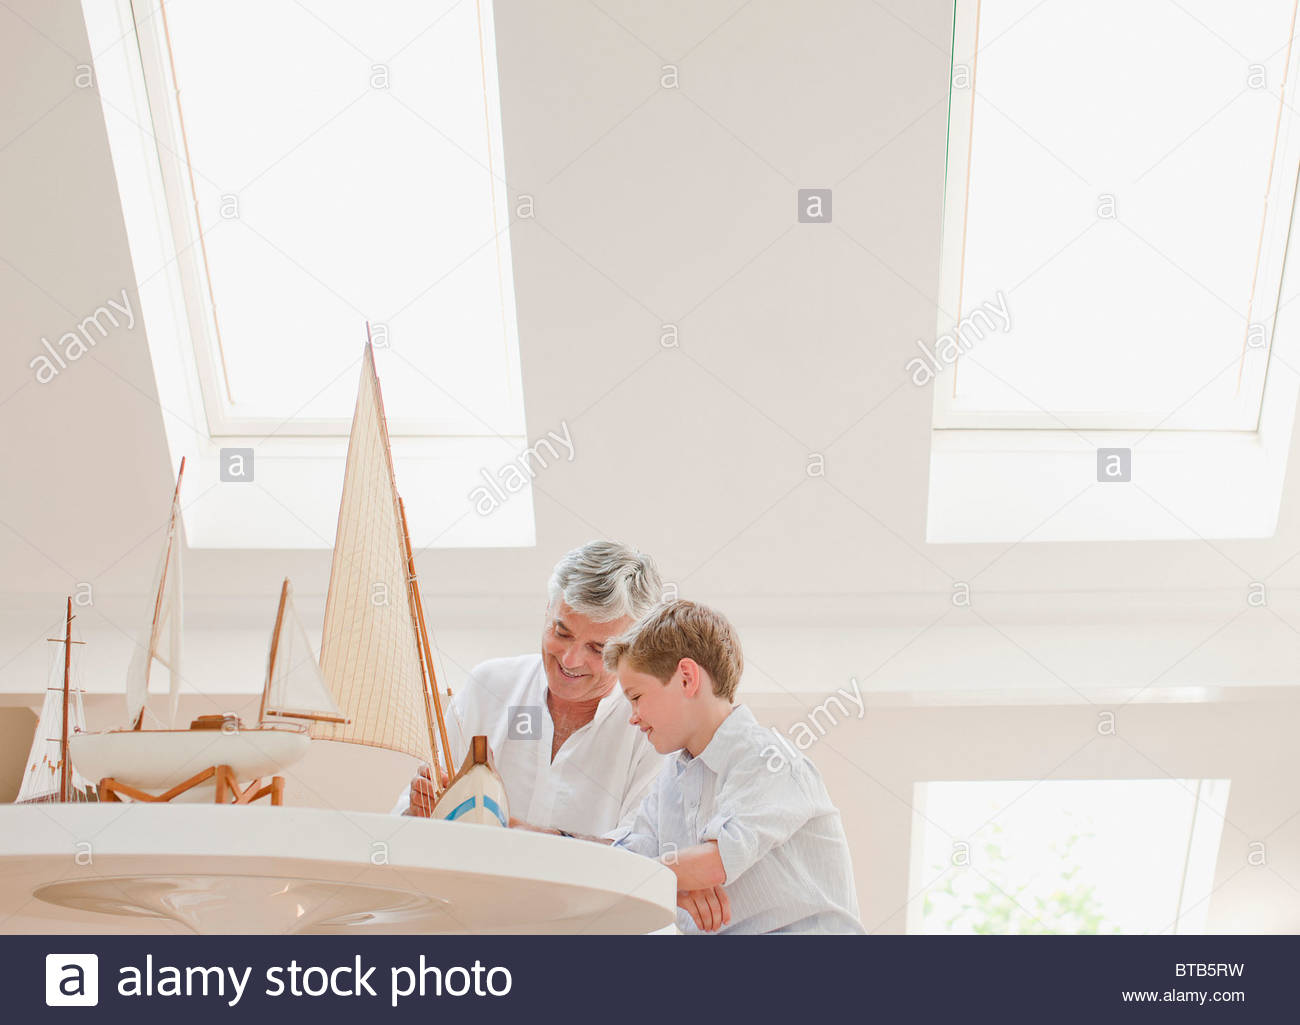 Father and son assembling model sailboat - Stock Image